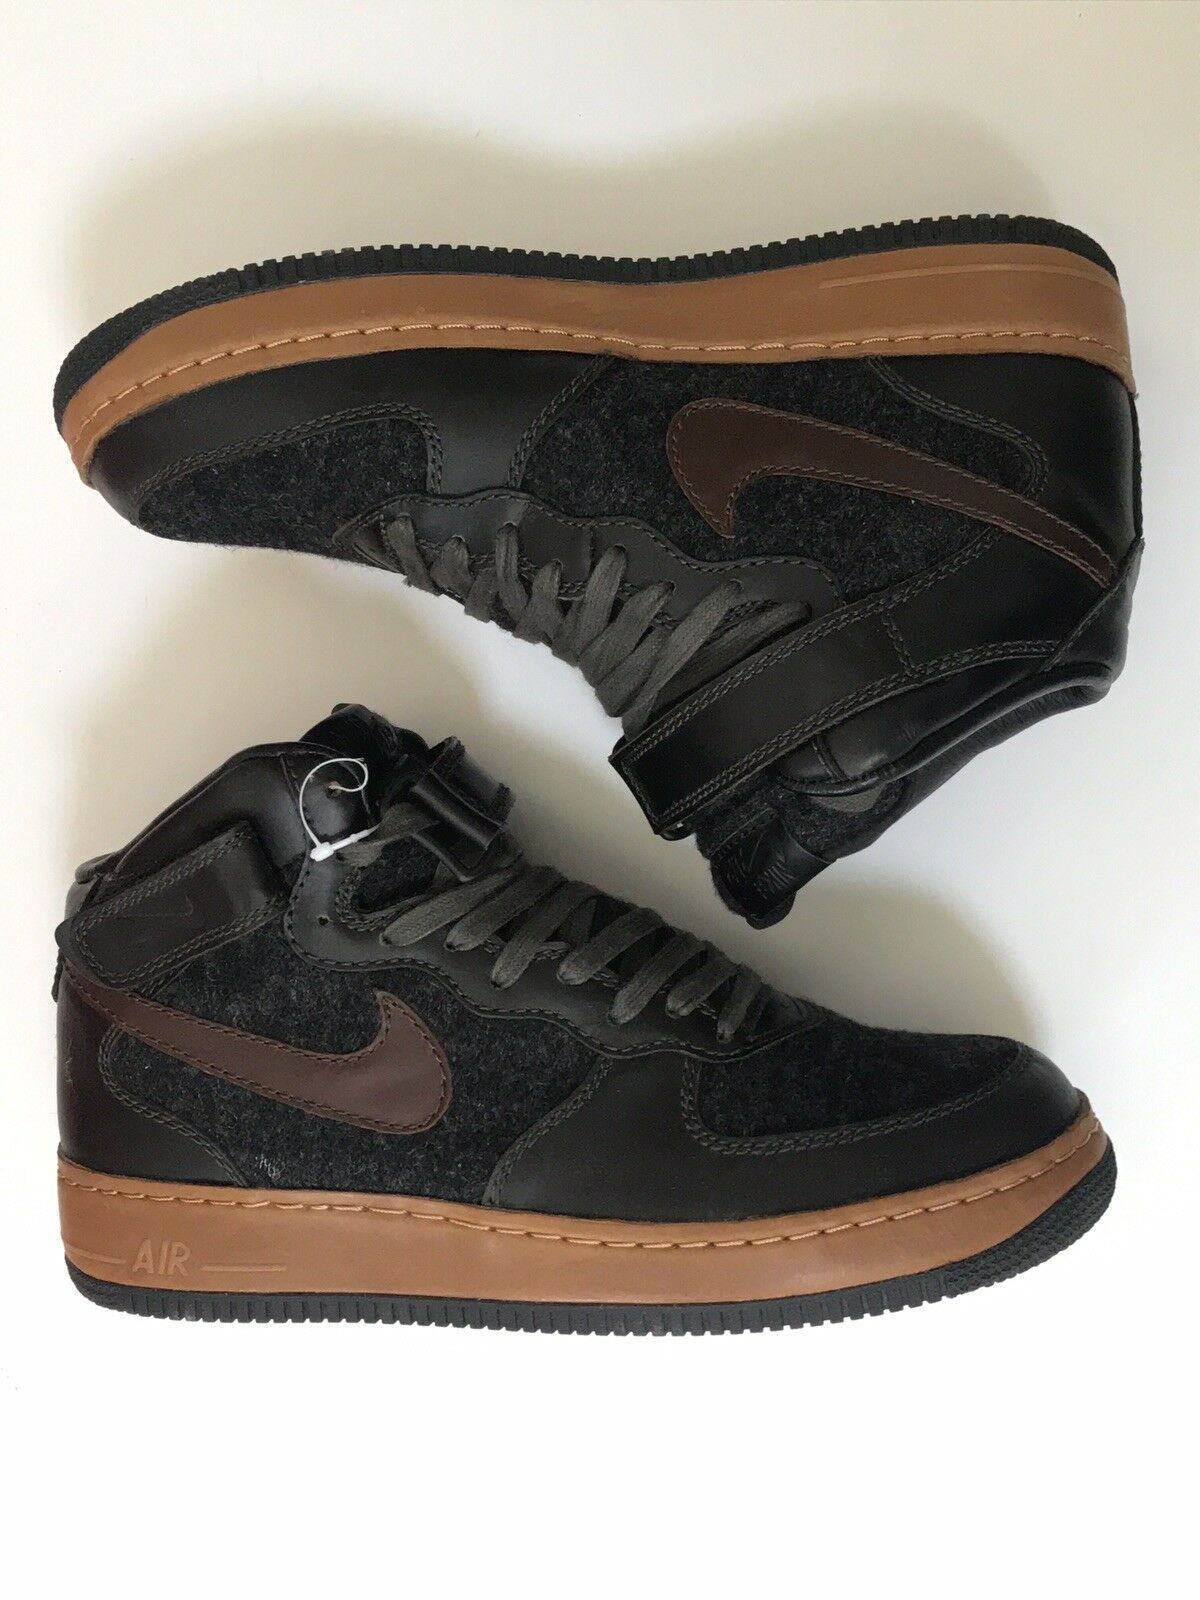 NEW 2004 NIKE AIR FORCE 1 MID MID MID INSIDEOUT SIZE 10.5 US 9.5 YEEZY 7c2122